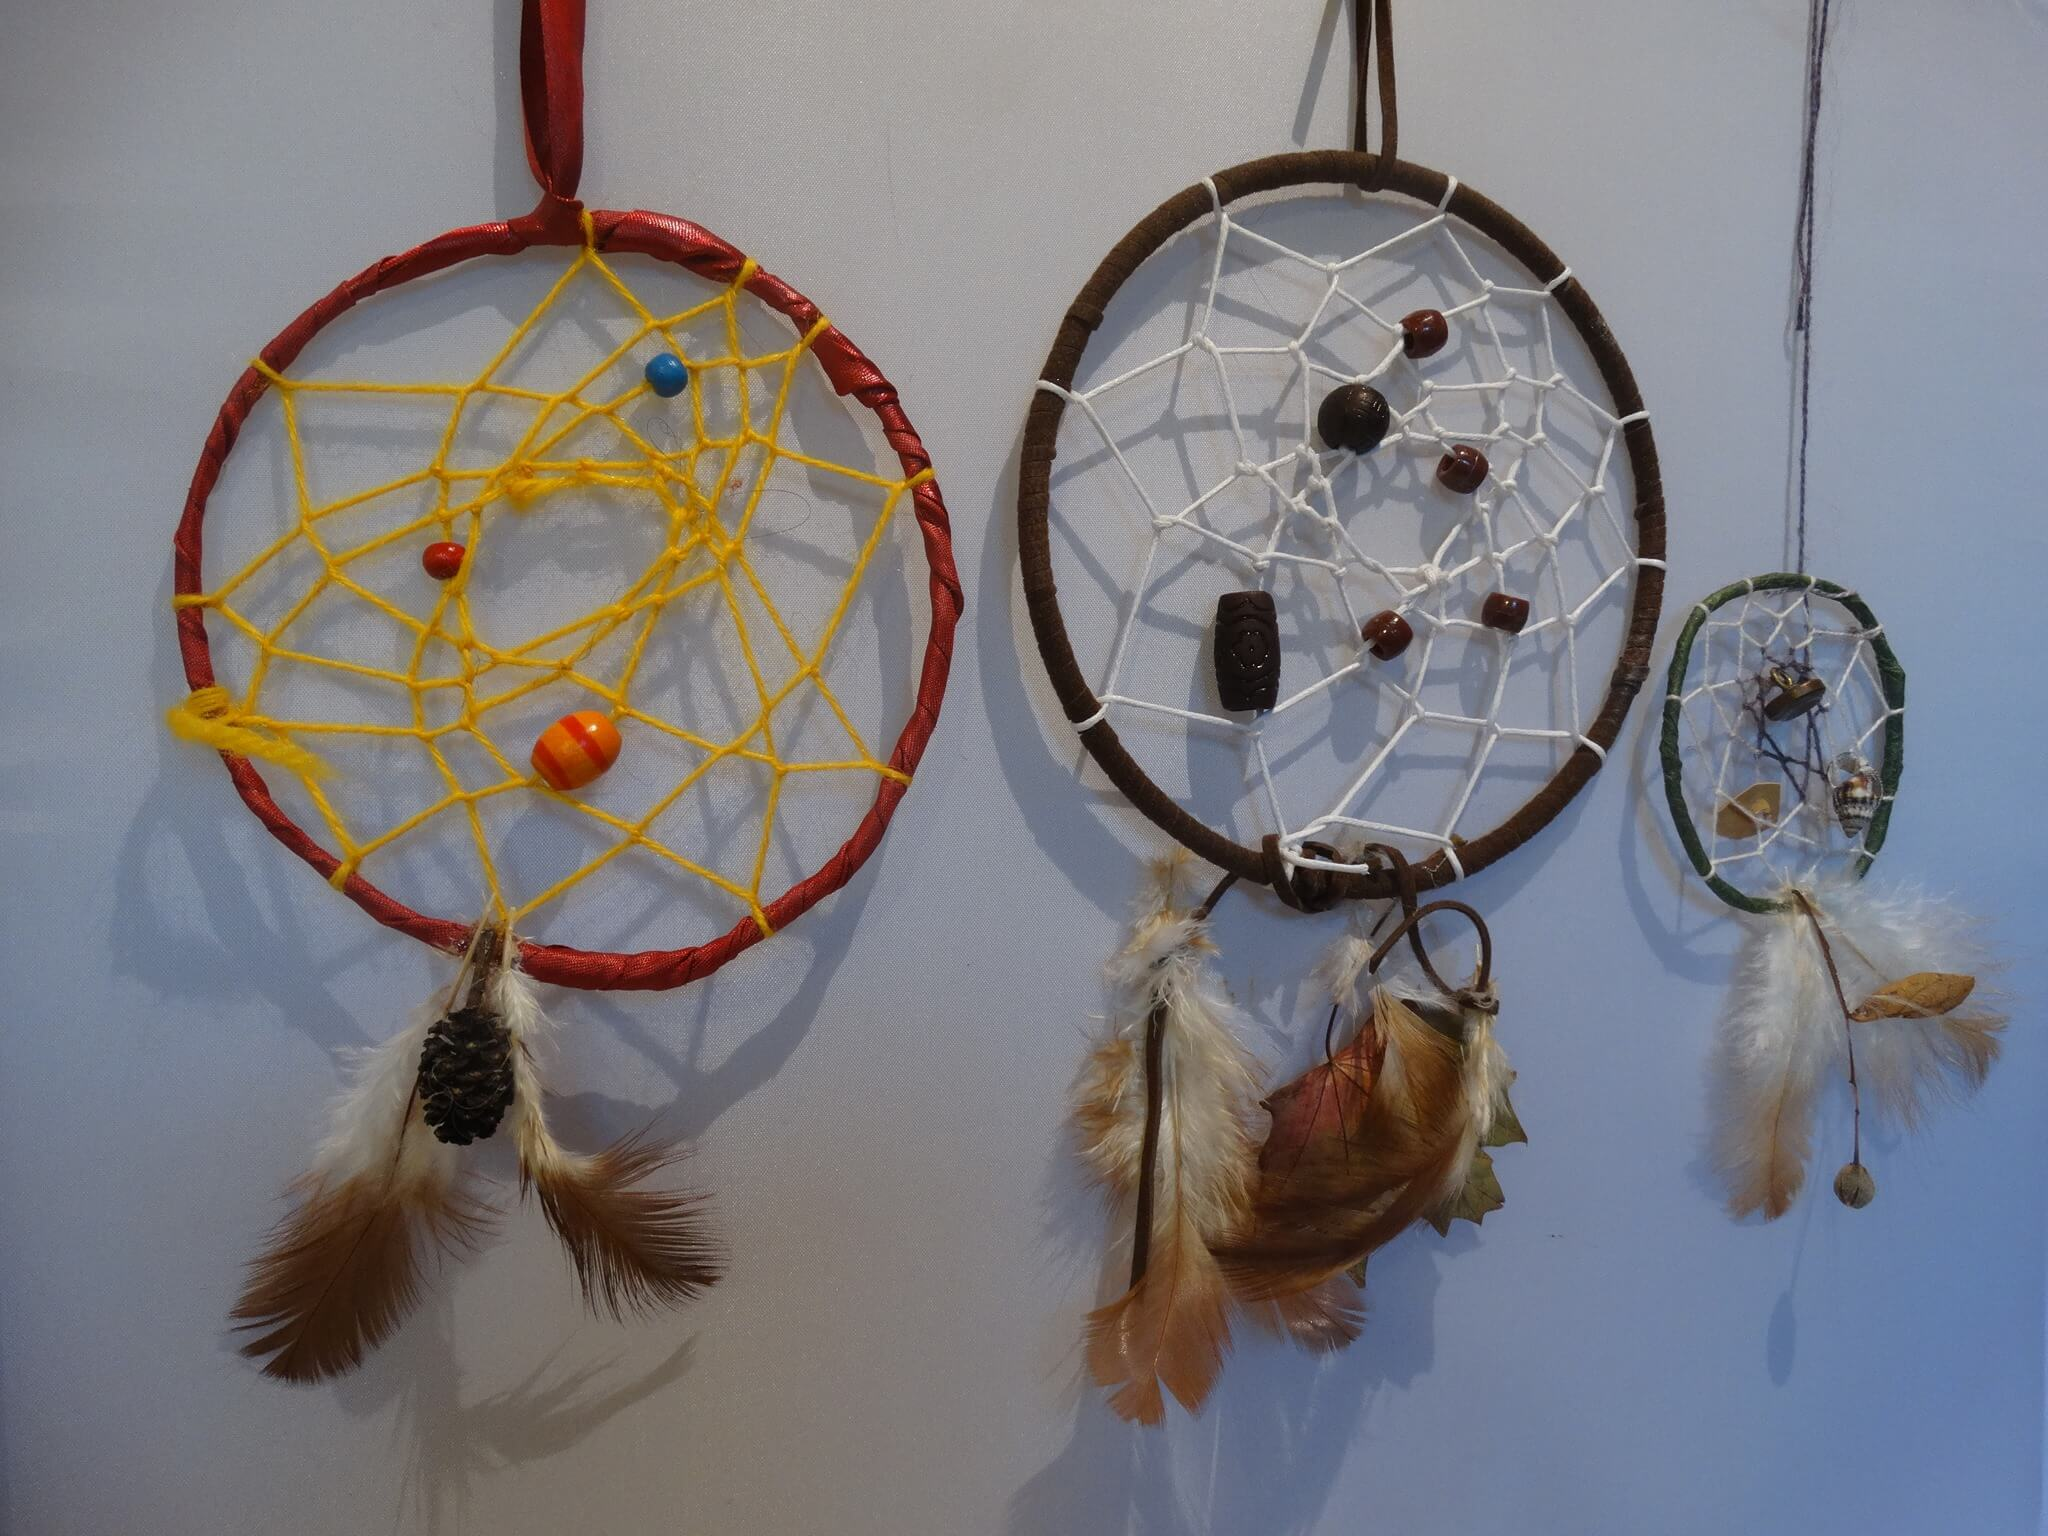 Make your own dream catcher!